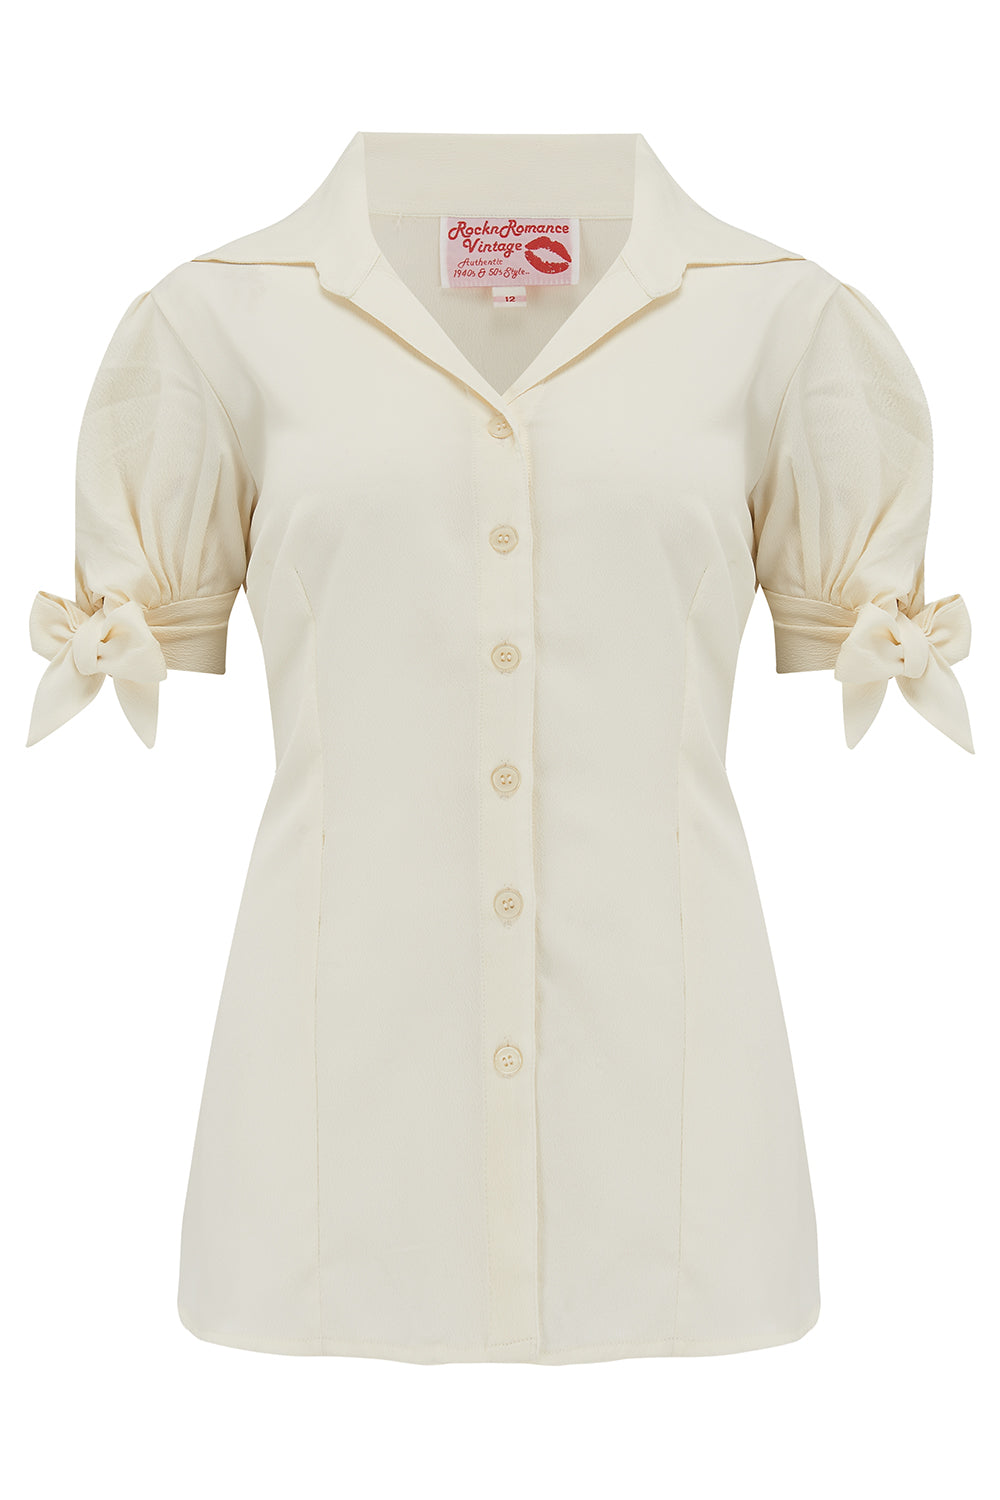 50s Shirts & Tops The Jane Blouse in Solid Antique White True  Authentic 1950s Vintage Style £29.00 AT vintagedancer.com